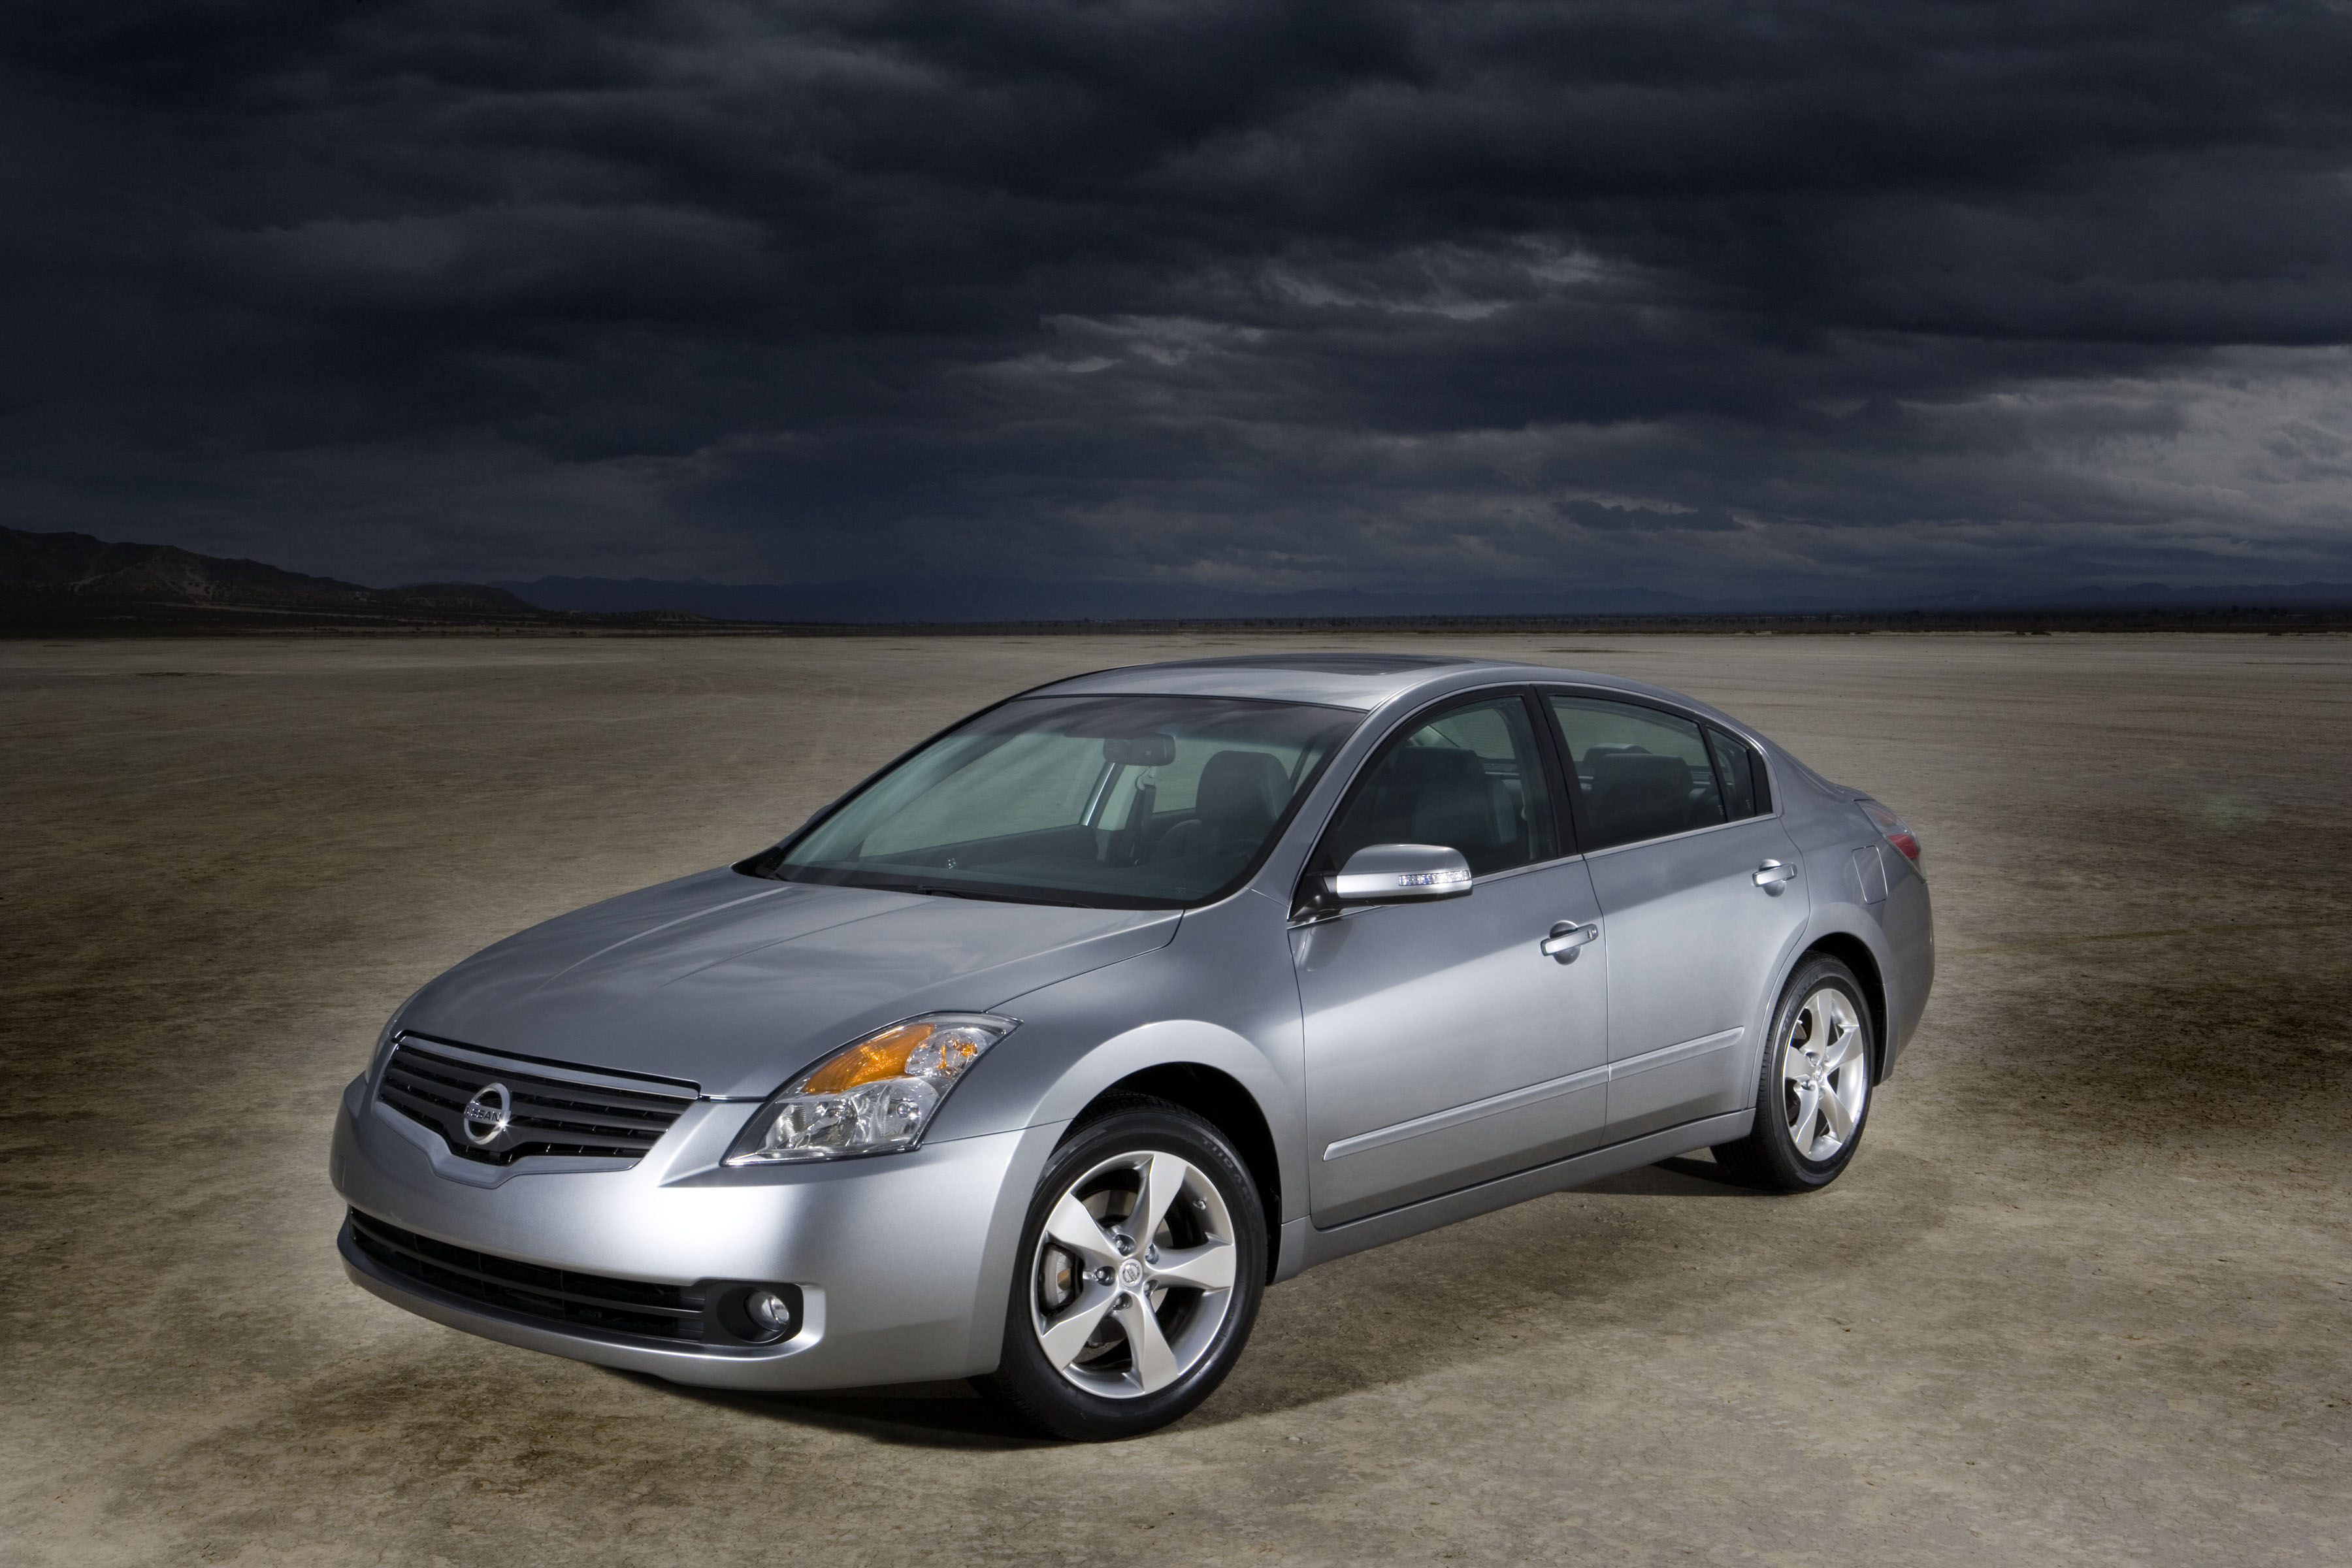 High Quality 2007 Nissan Altima Review   Top Speed. »